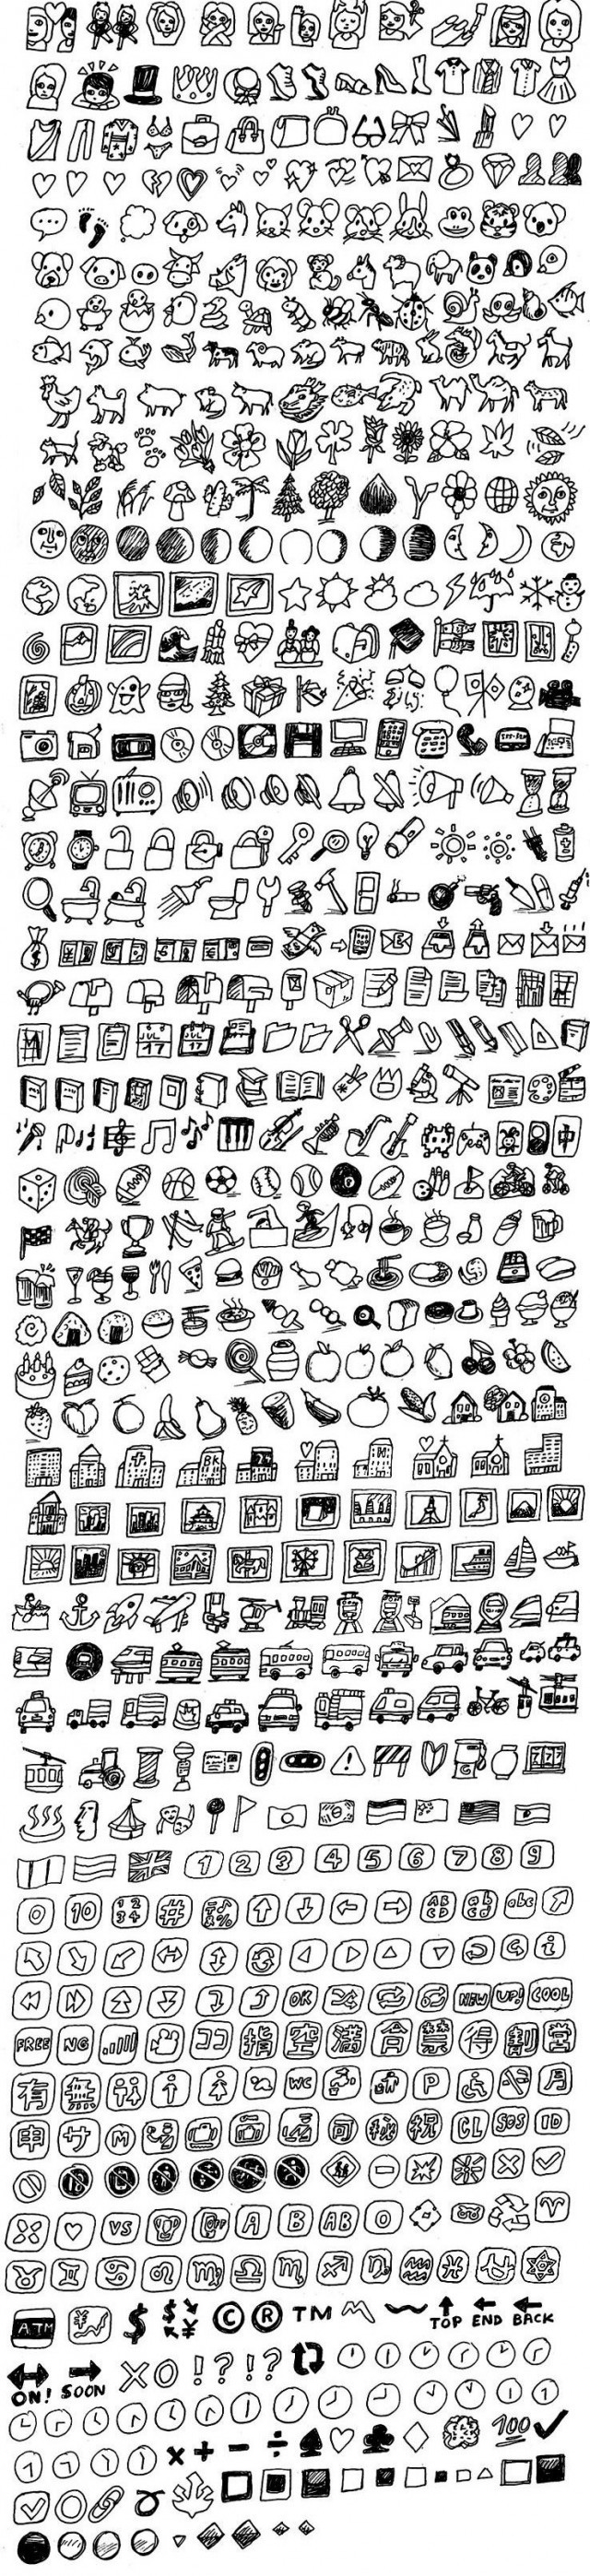 All the Emojis, Drawn - The Hairpin